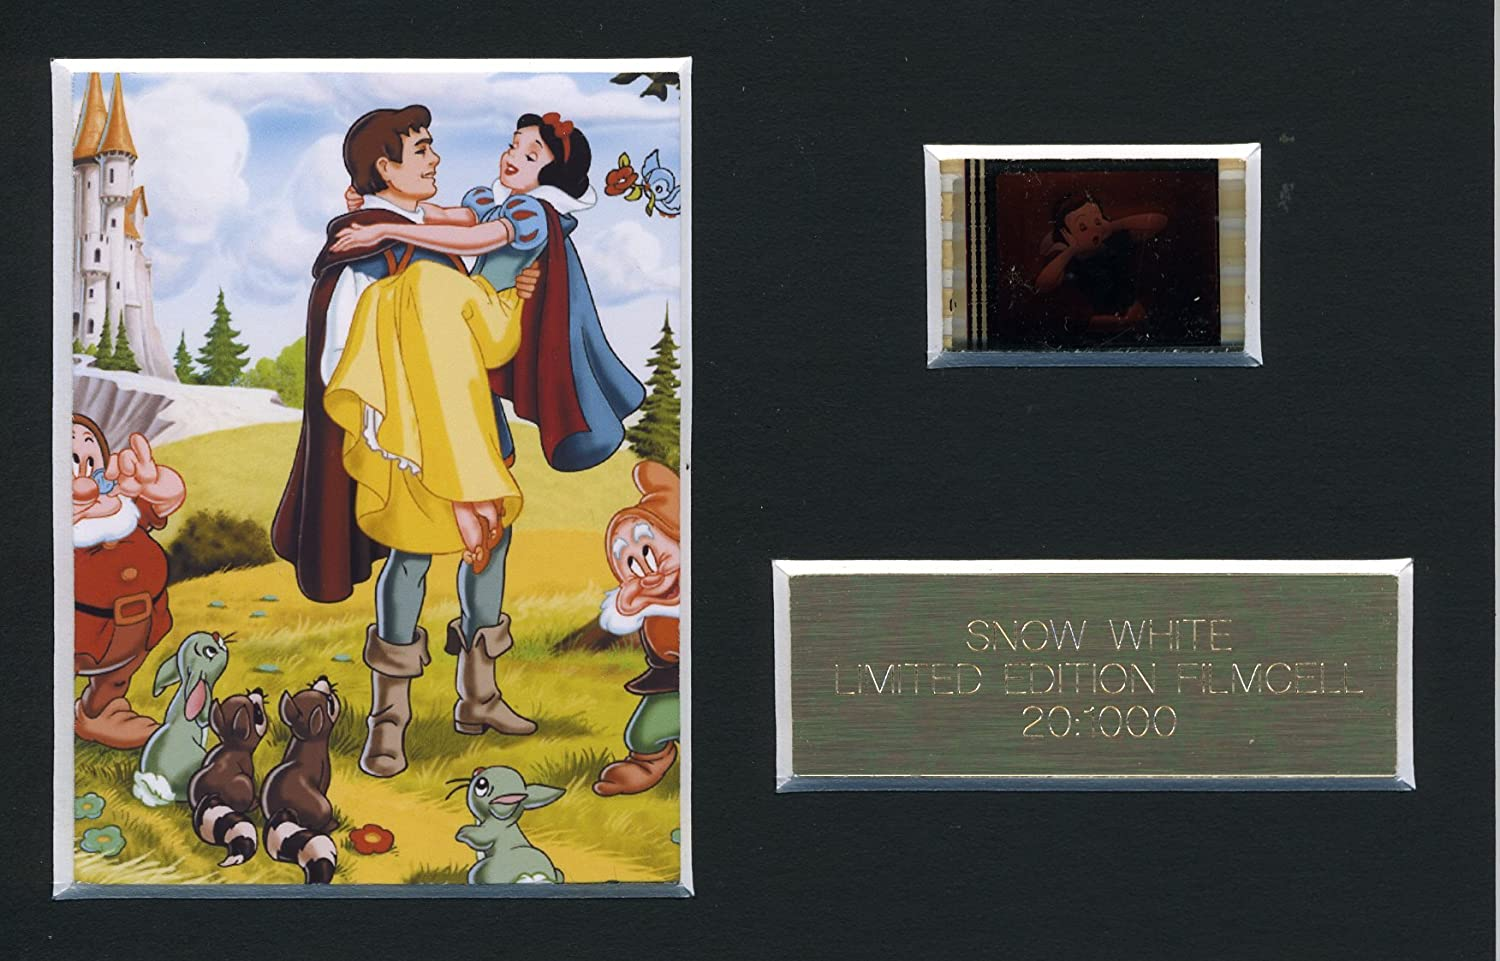 Snow White and the Seven Dwarfs (I) Disney Limited Edition Film Cell m